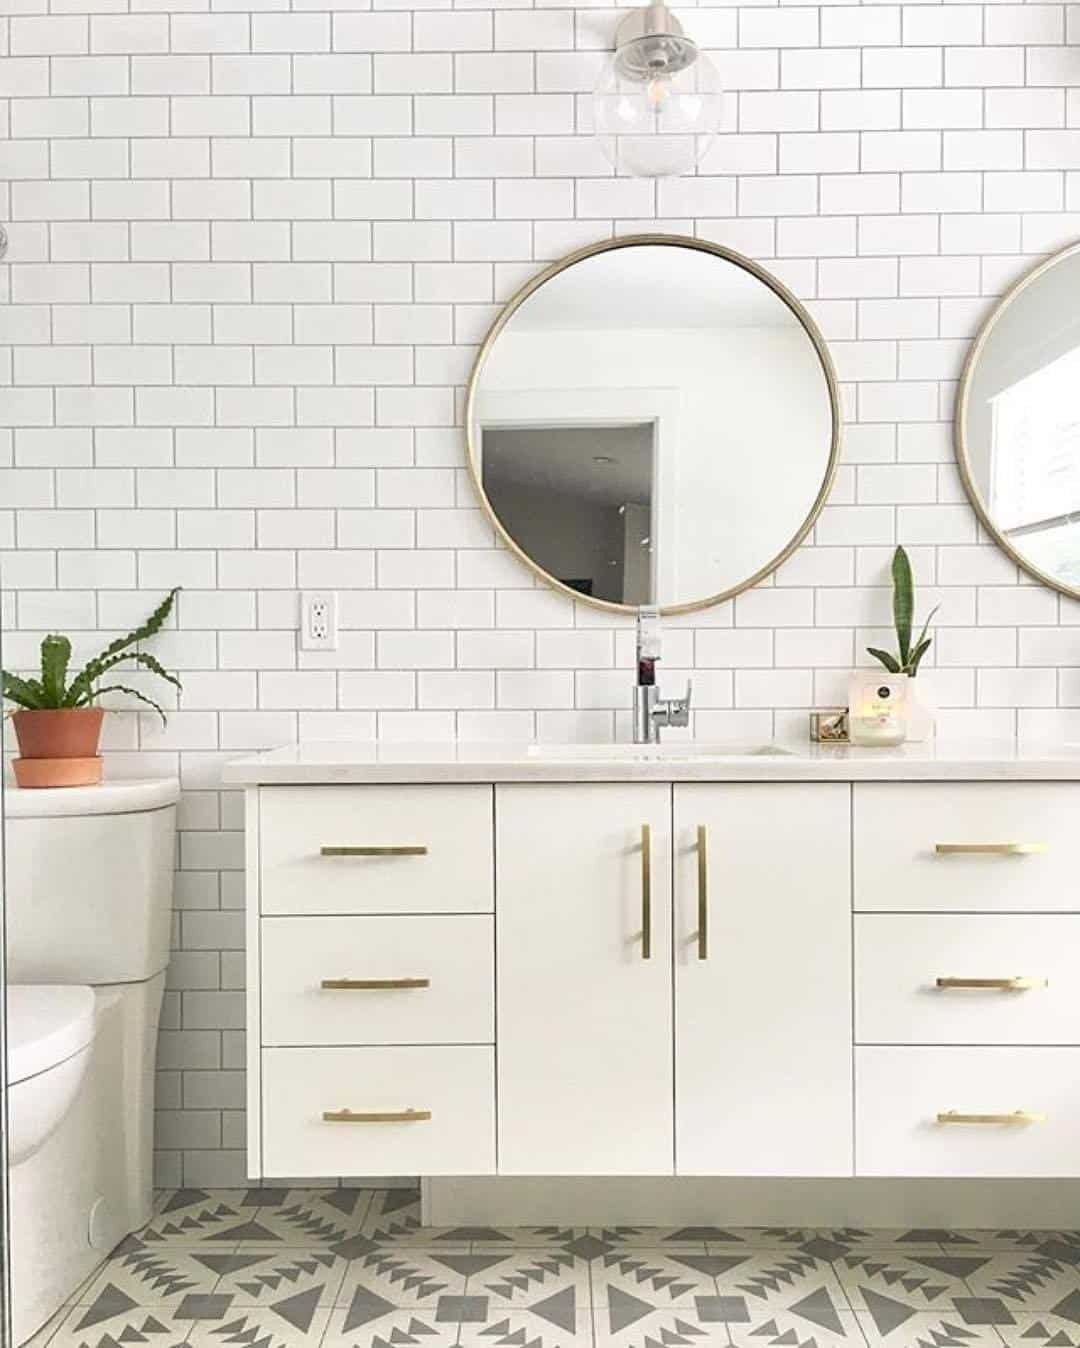 Superb Read More To Experience My Mid Century Modern Bathroom Remodel In All Itu0027s  Disgusting Gloryu2026